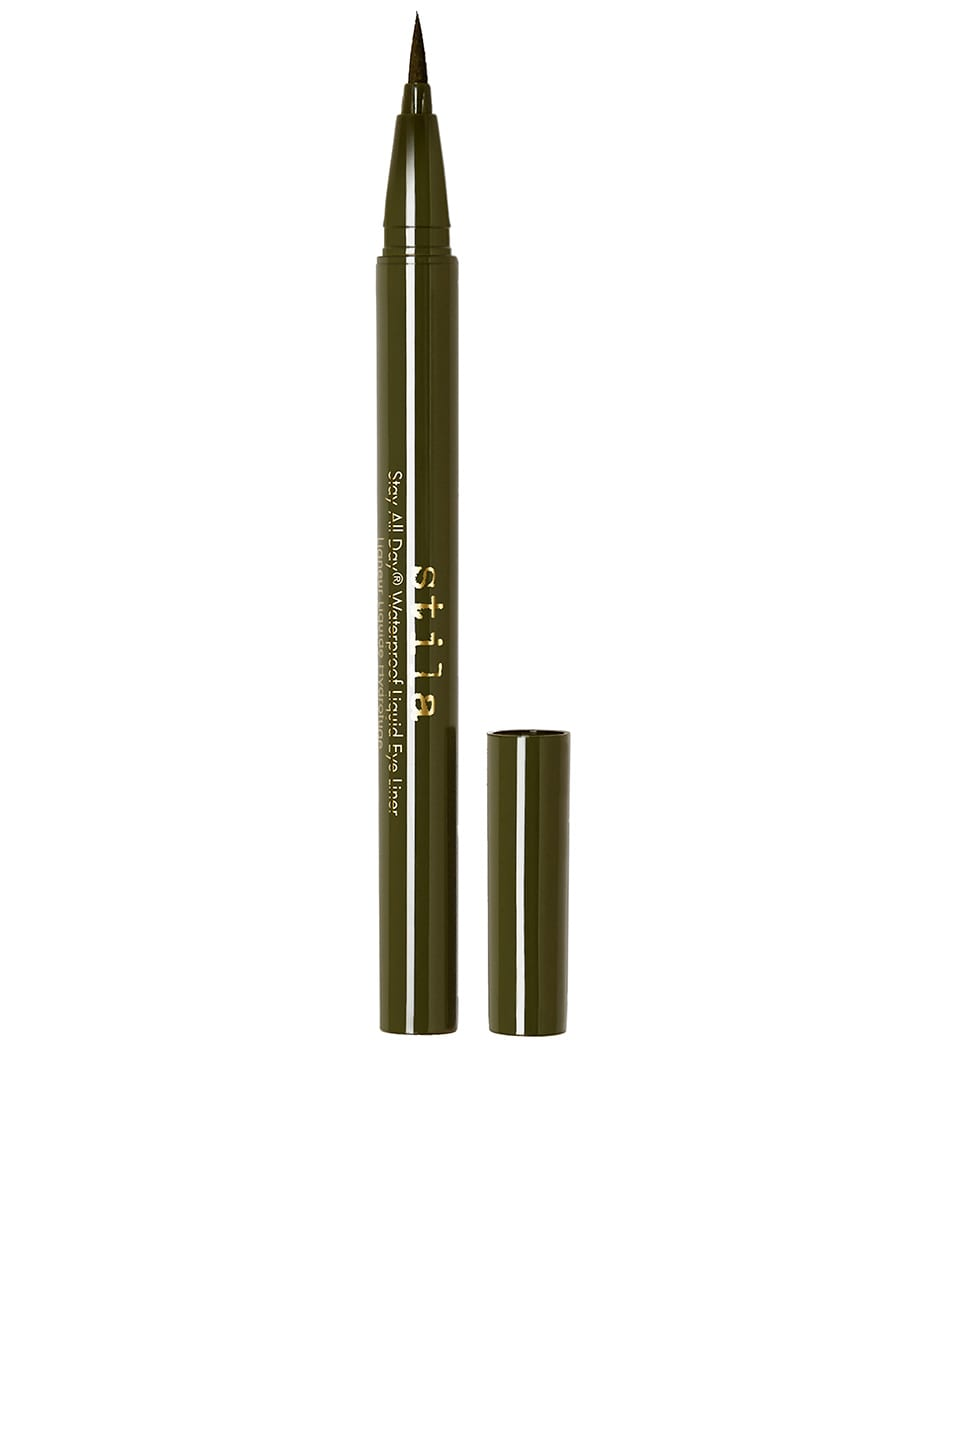 Stila Stay All Day Liner in Olive